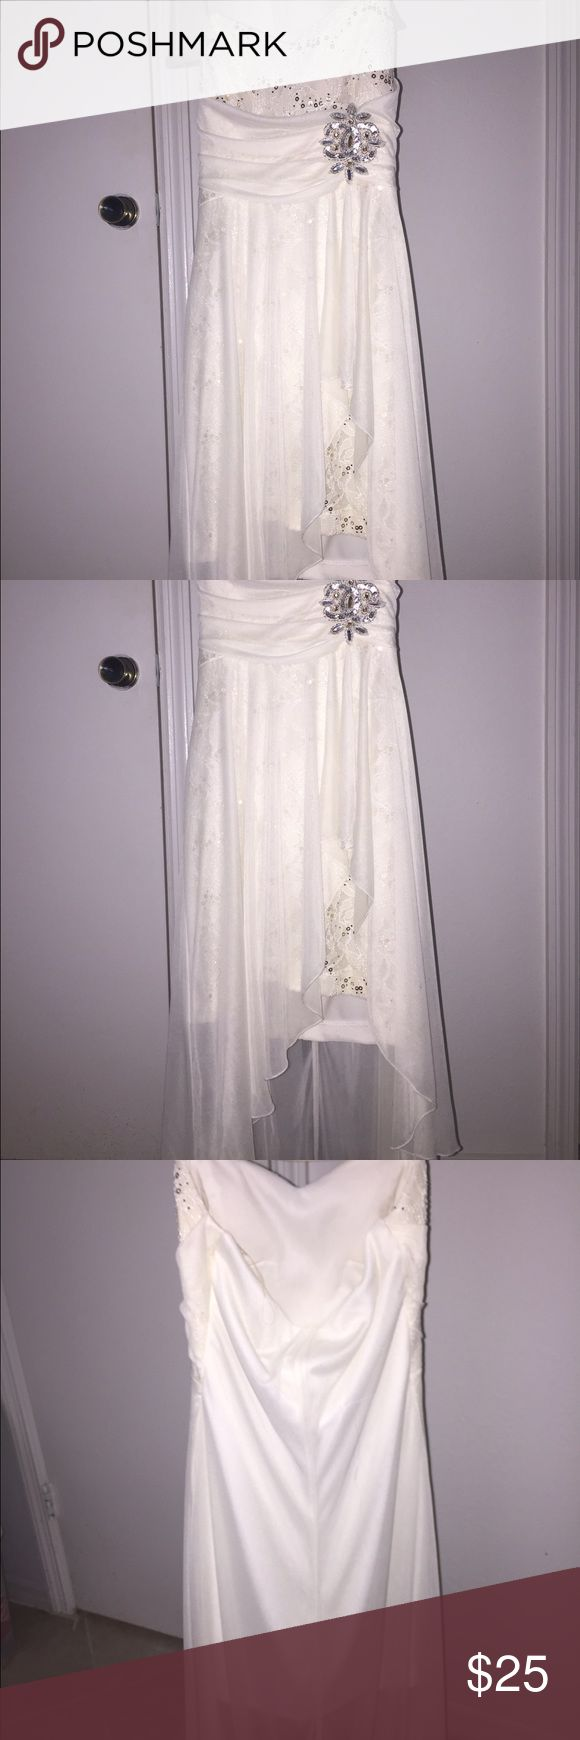 GORGEOUS white dress Child's dress, maybe can even fit petite teen (small). Perfect for a wedding or any special occasion, gorgeous, gorgeous, gorgeous! NOT DAVIDS BRIDAL, JUST FOR EXPOSURE David's Bridal Dresses